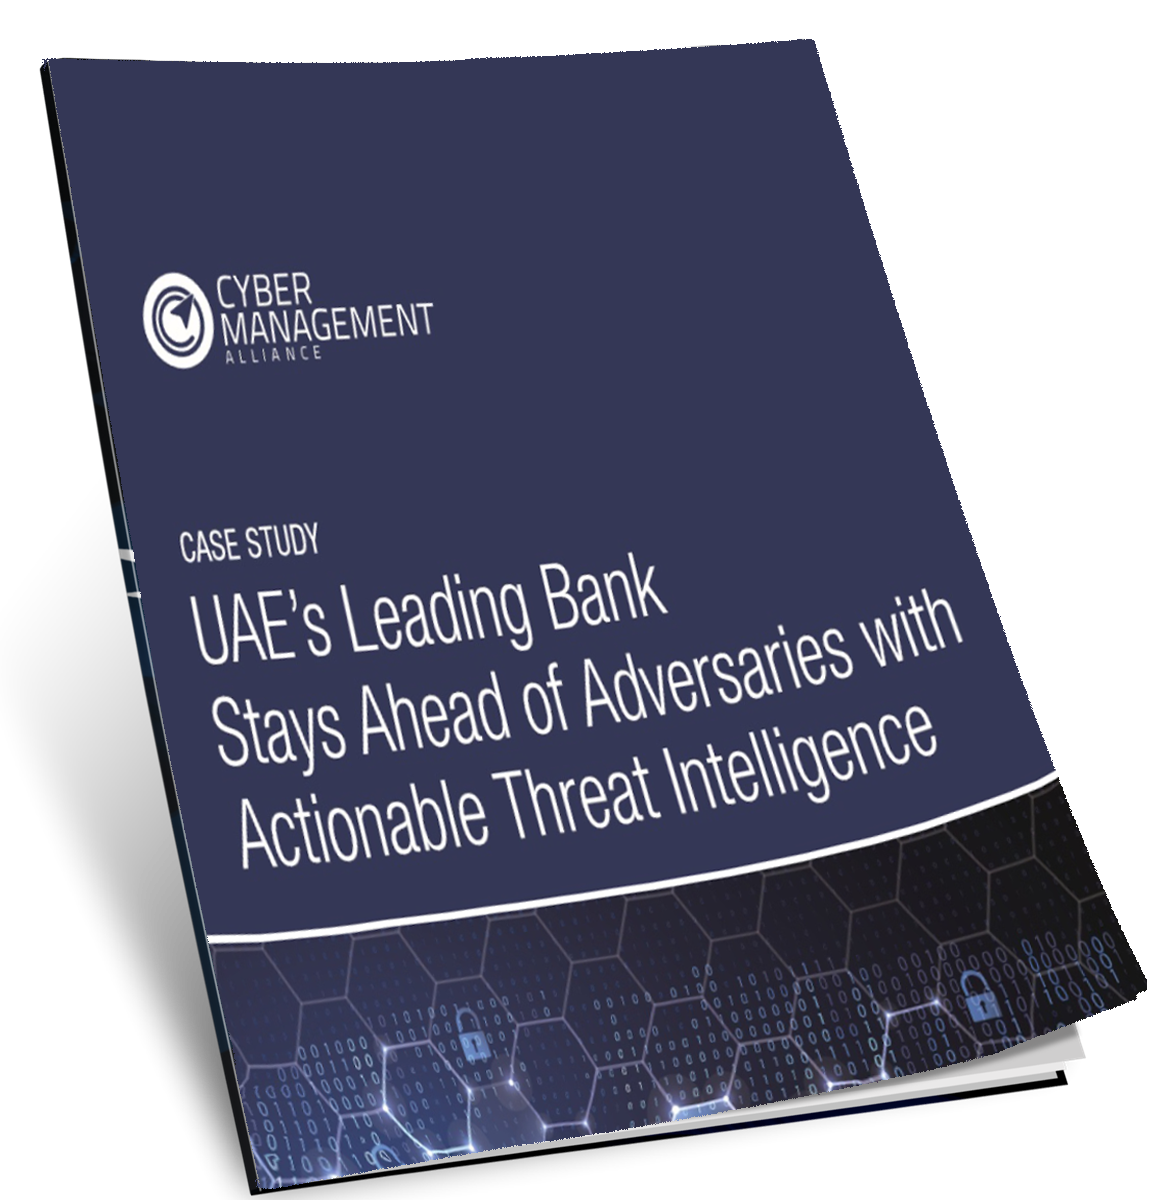 UAE Threat Intelligence Case Study Report